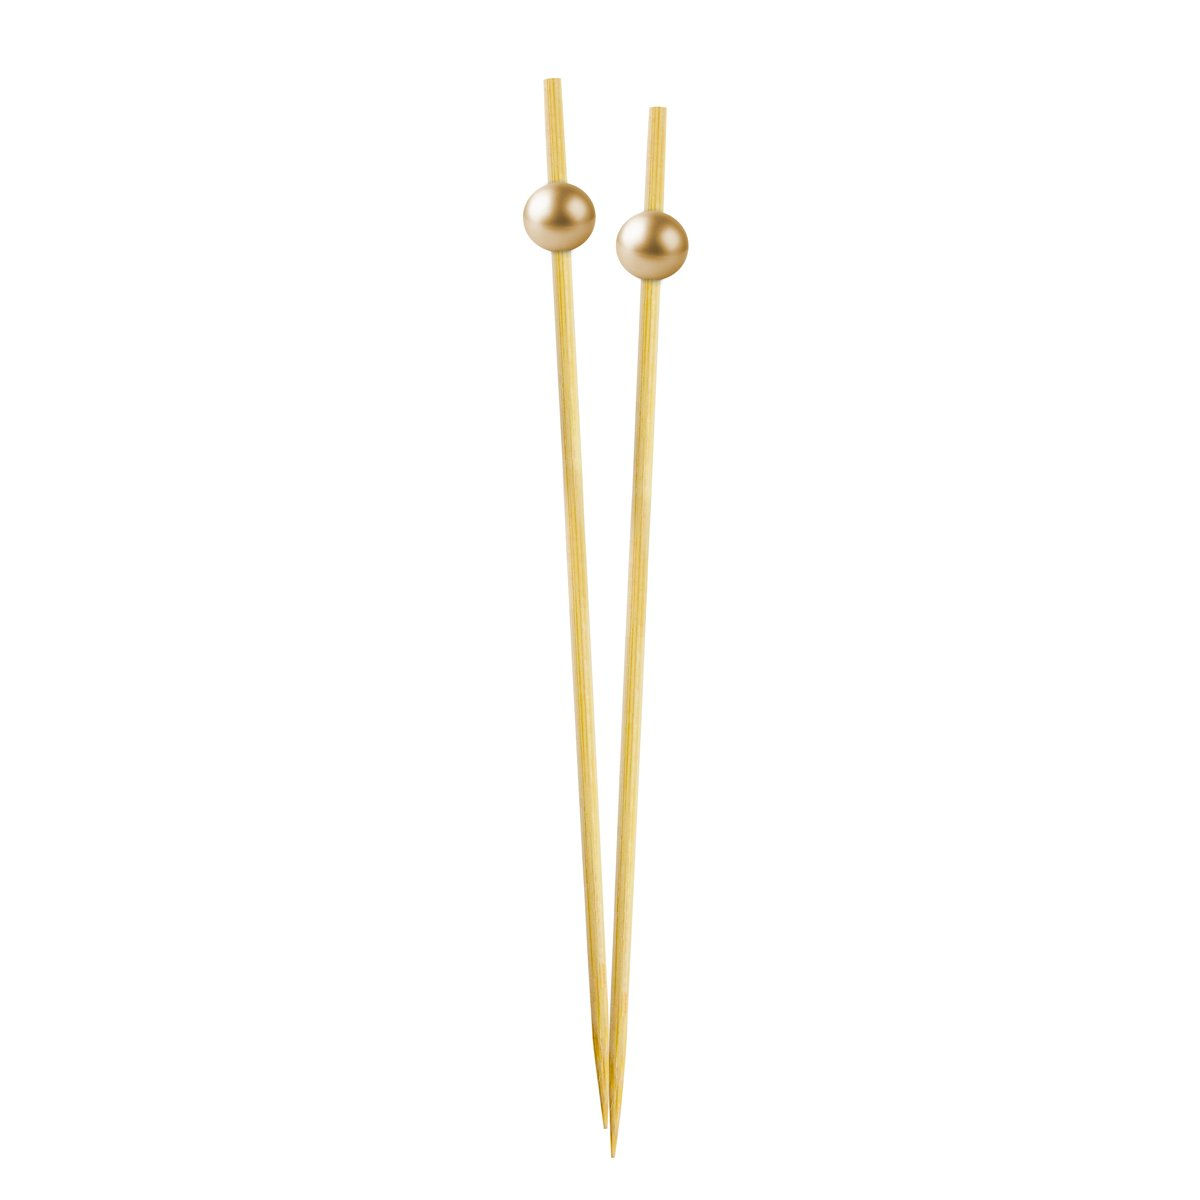 Simply Baked Large Appetizer & Cocktail Pick Metallic Gold Ball on Natural Wood Pick 30-Pack Disposable and Sturdy